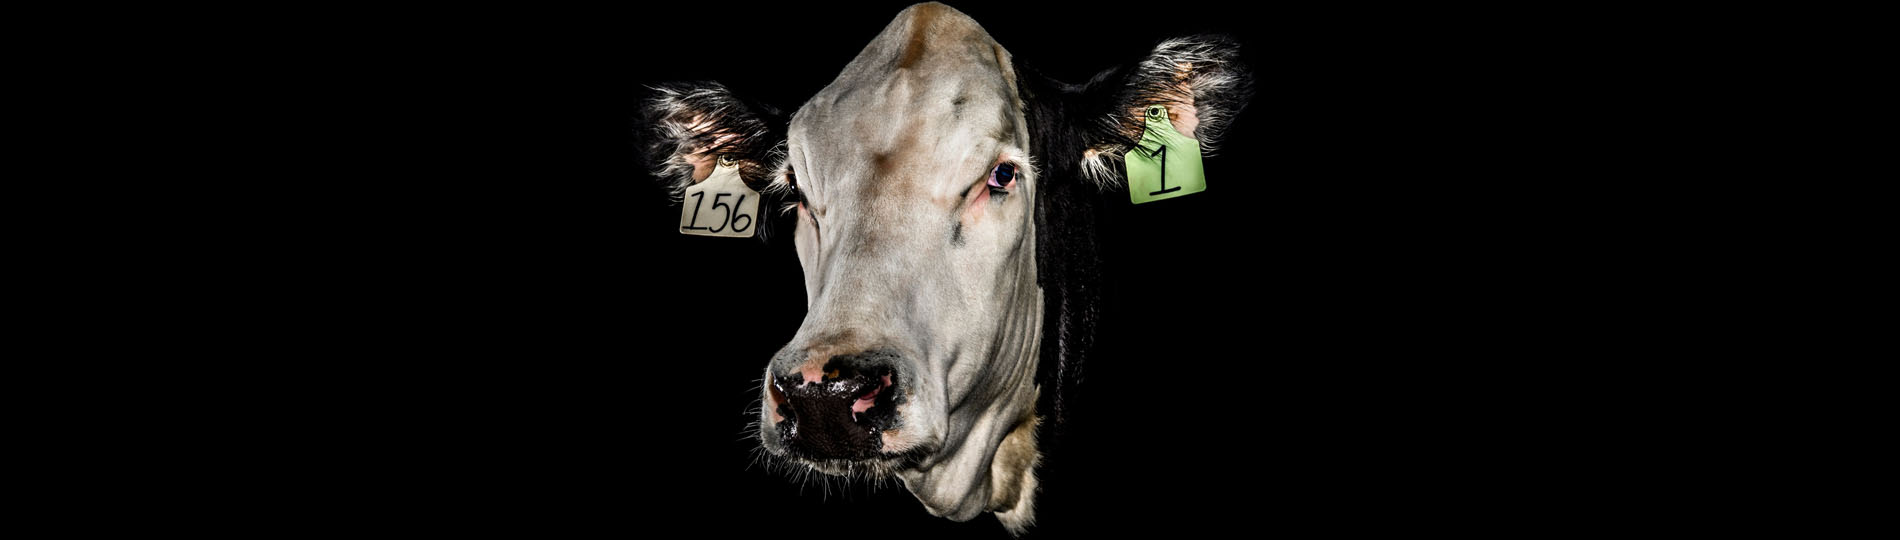 A more humane livestock industry, brought to you by Crispr